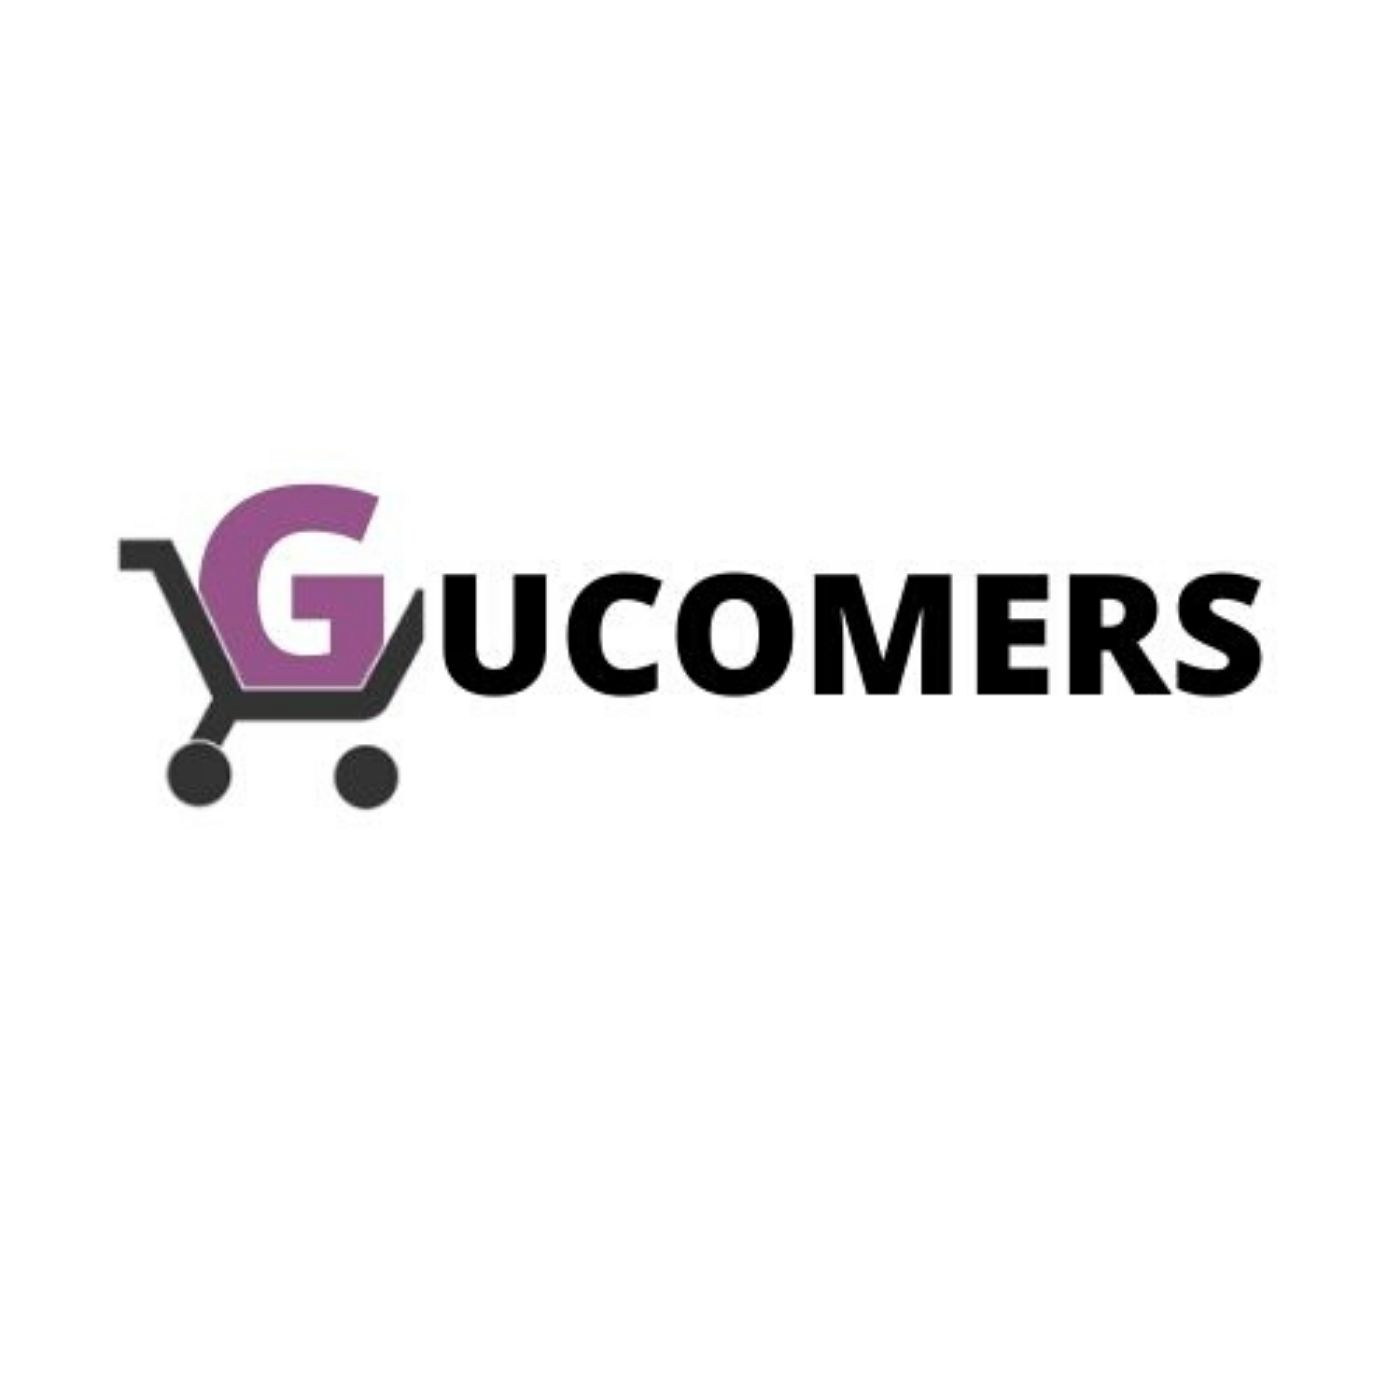 Gucomers